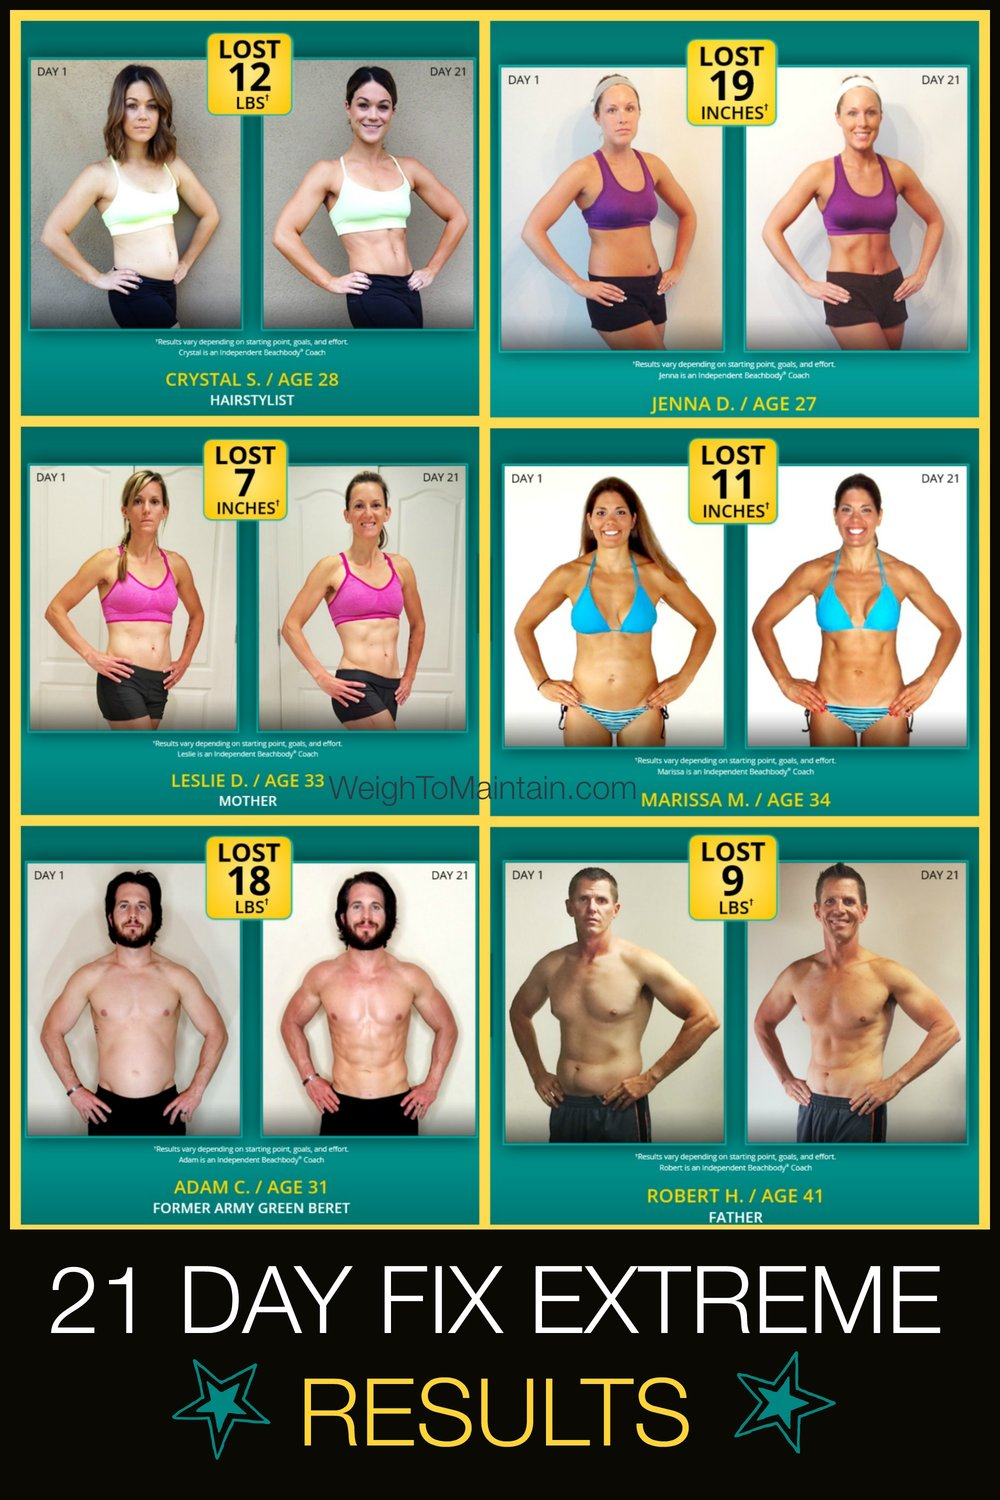 21 day fix extreme results weigh to maintain